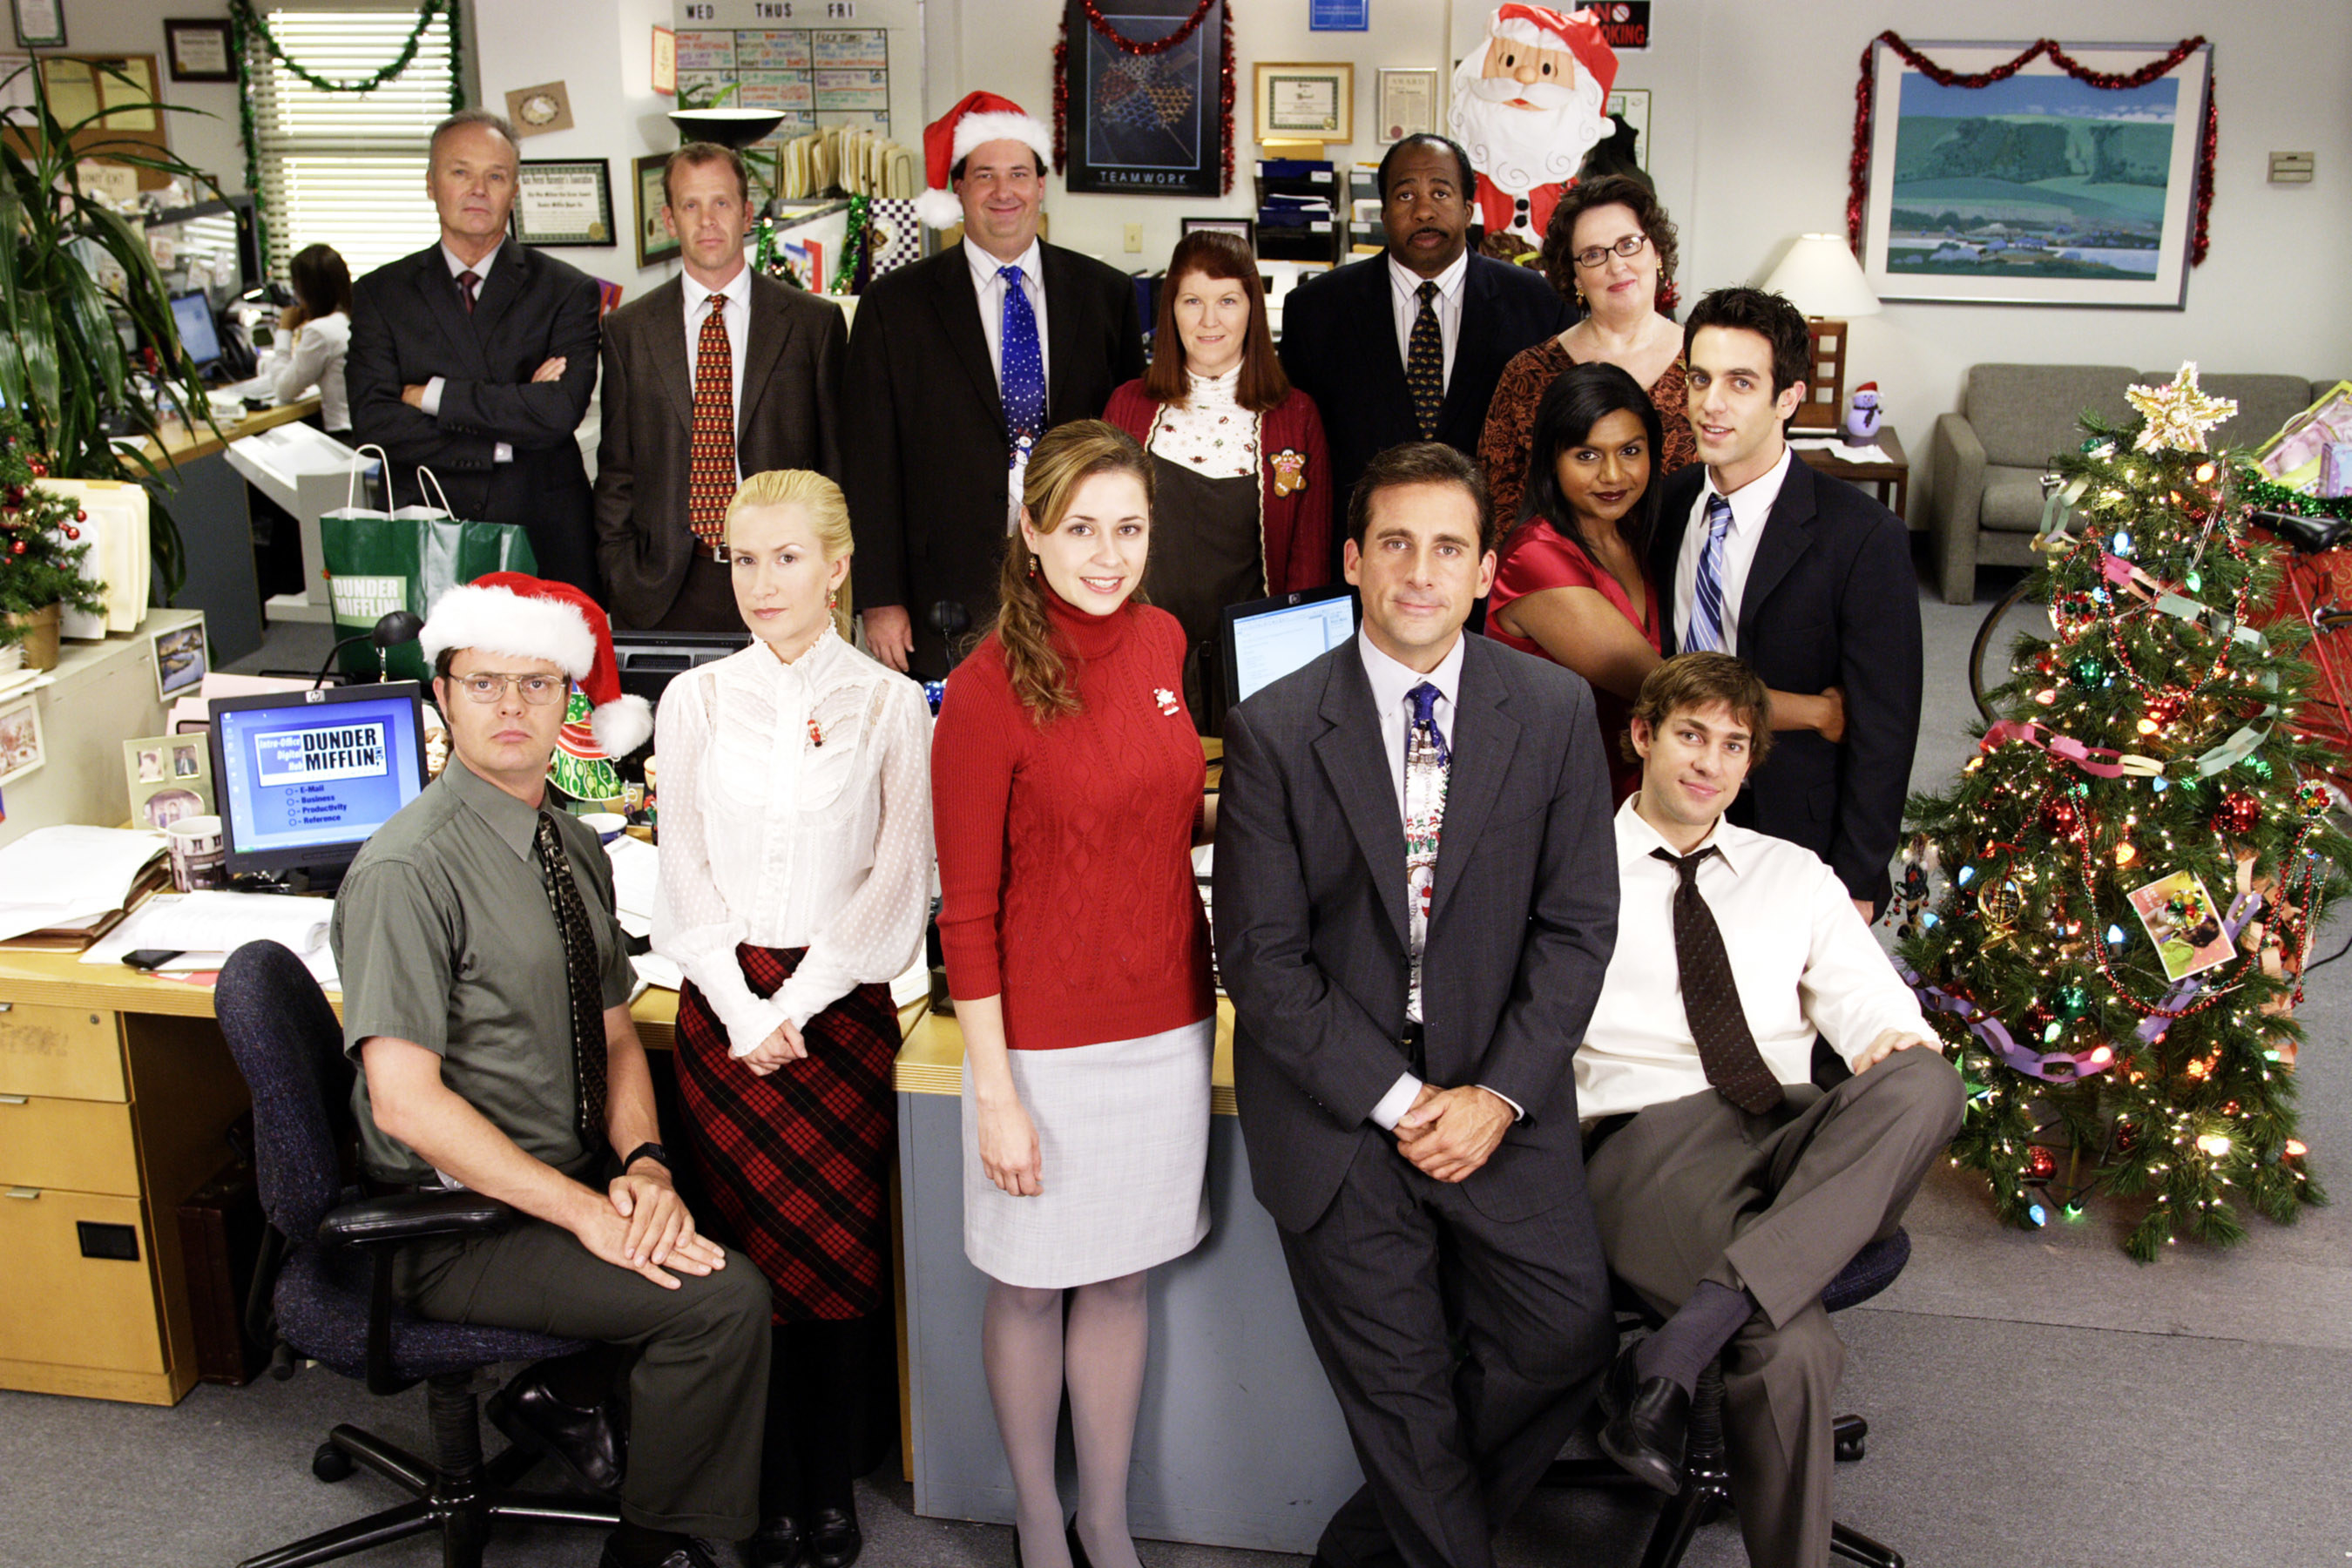 The cast of The Office posing for a christmas card photo